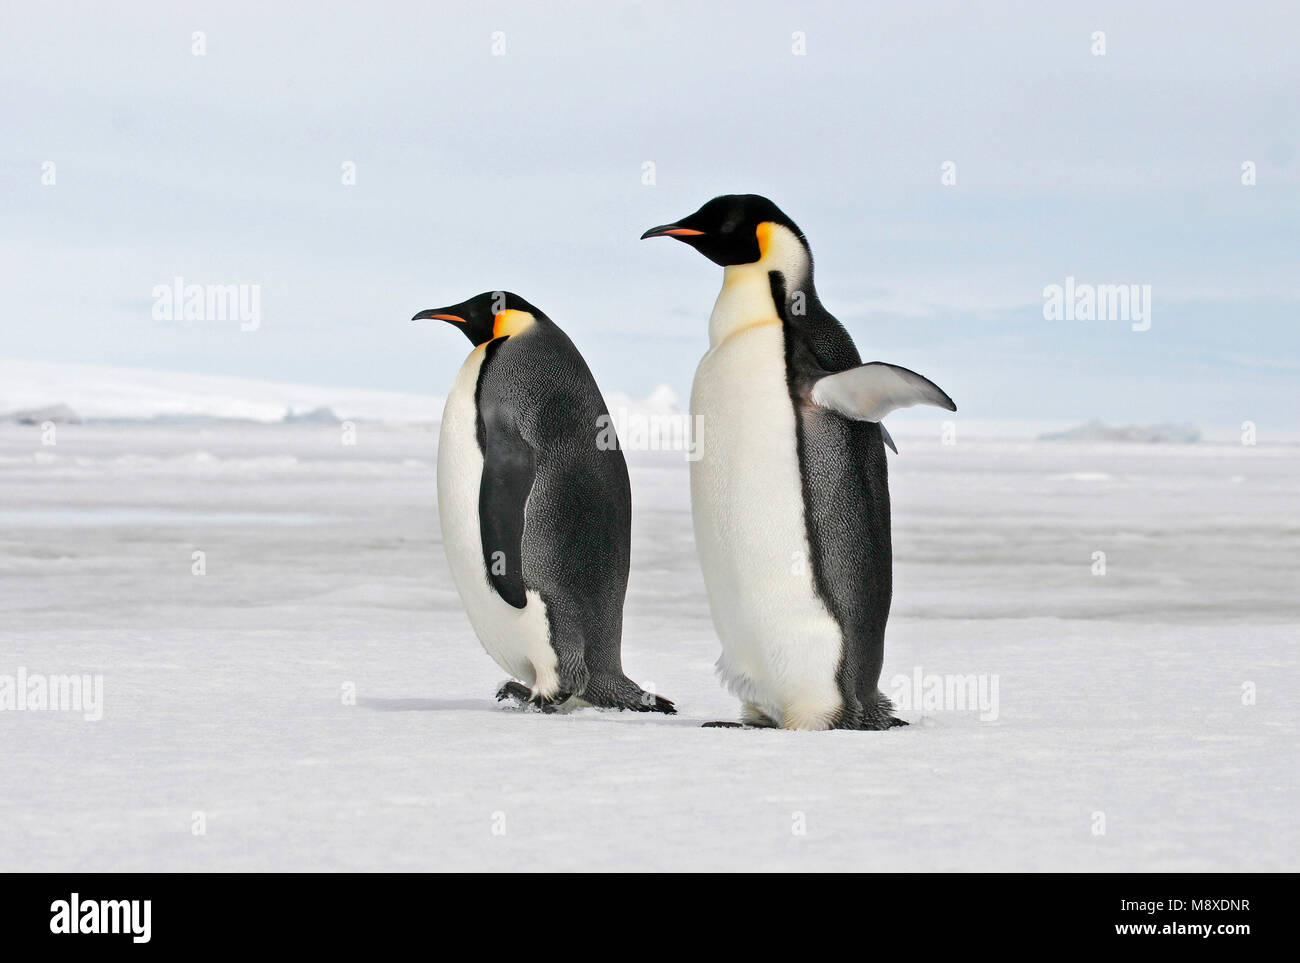 keizerspinguïn; Emperor Penguin Stock Photo